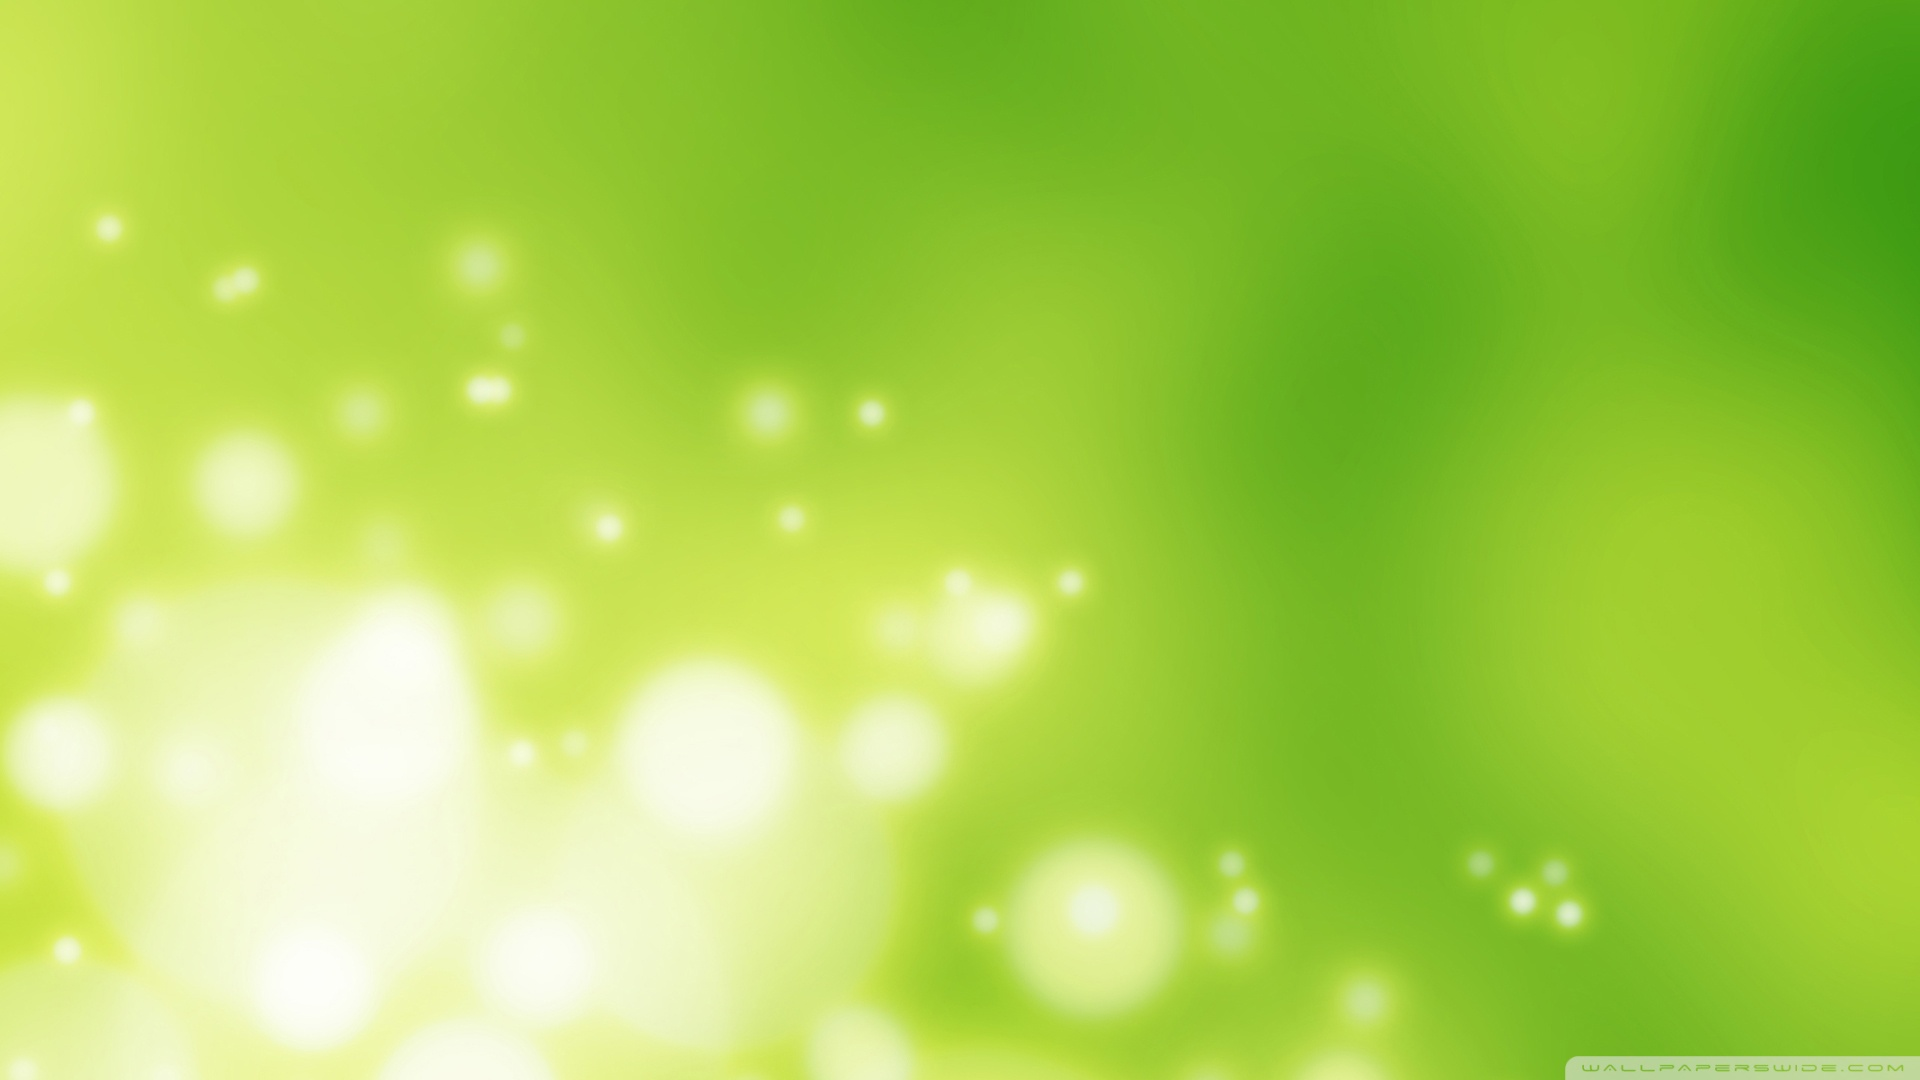 Wallpapers for Gt Lime Green Wedding Background